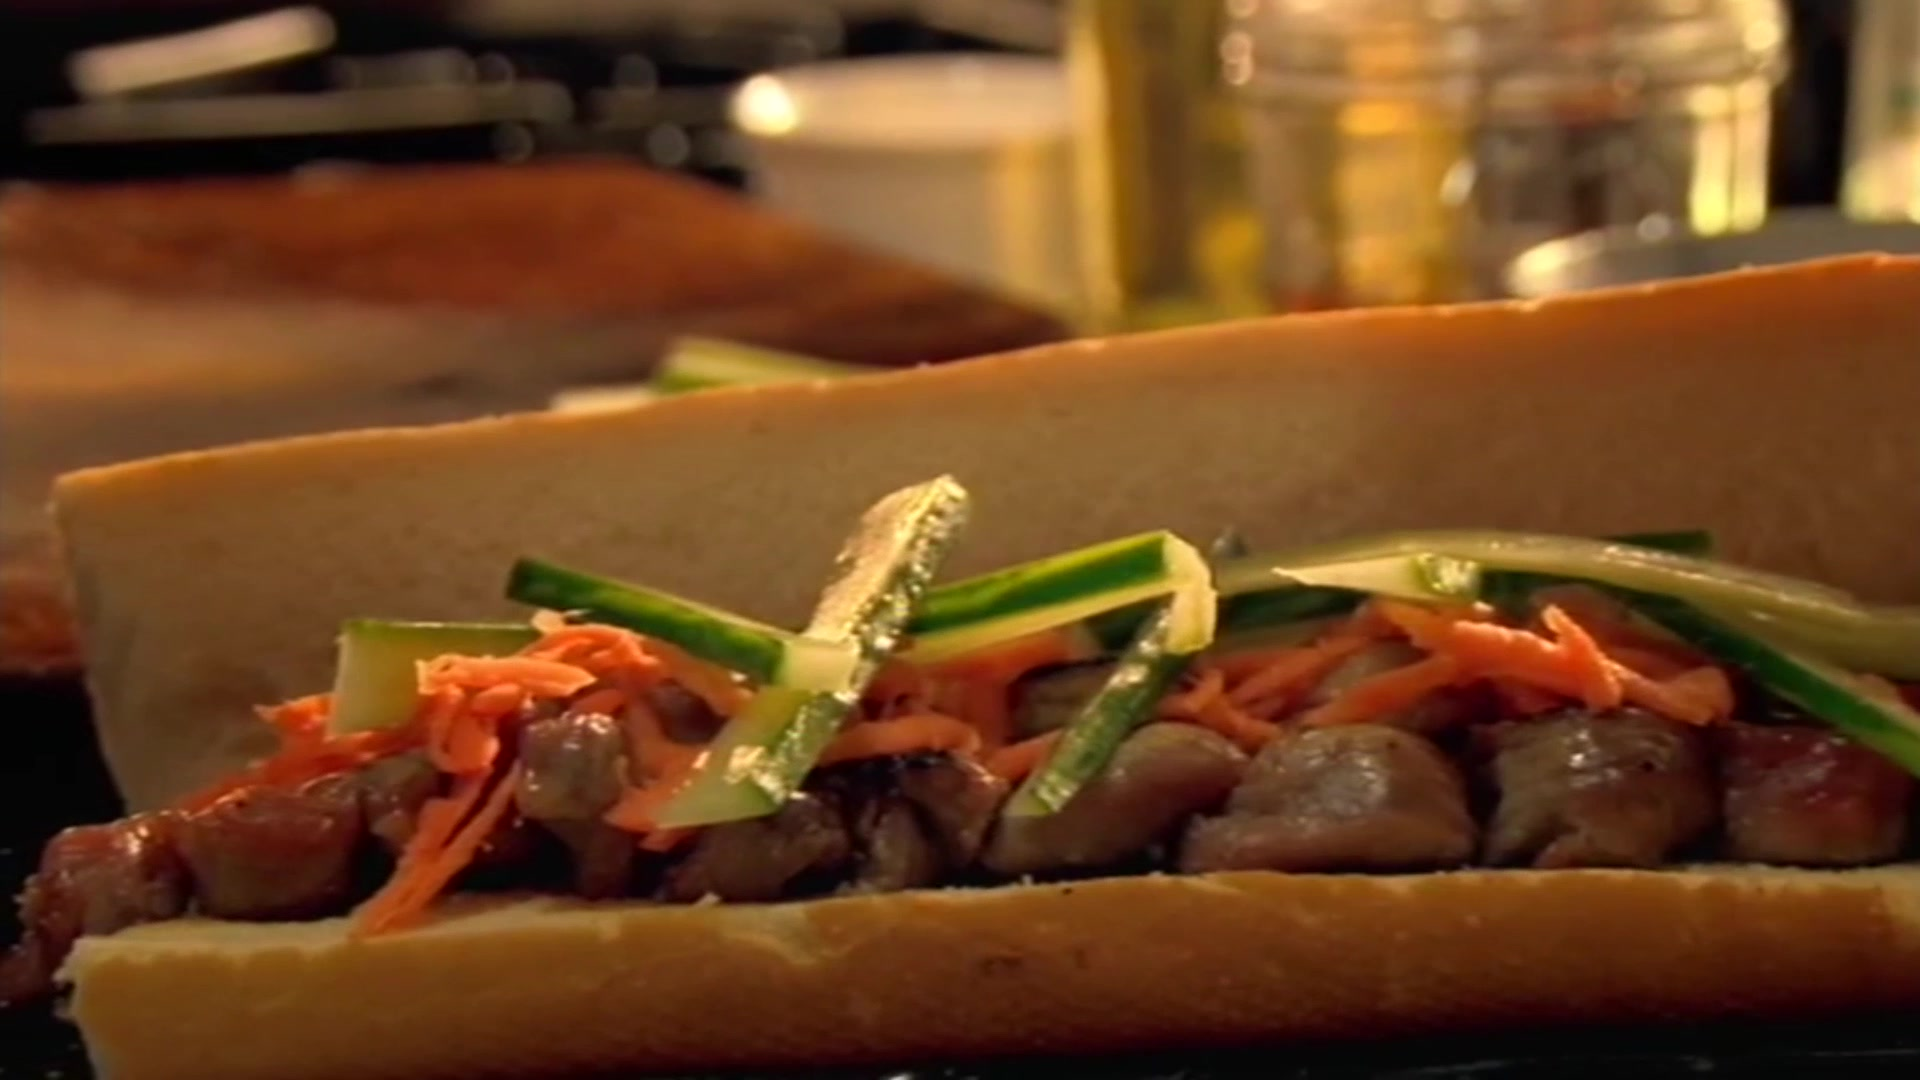 How to Make Gordon Ramsay's Vietnamese-Style Baguette With Beef